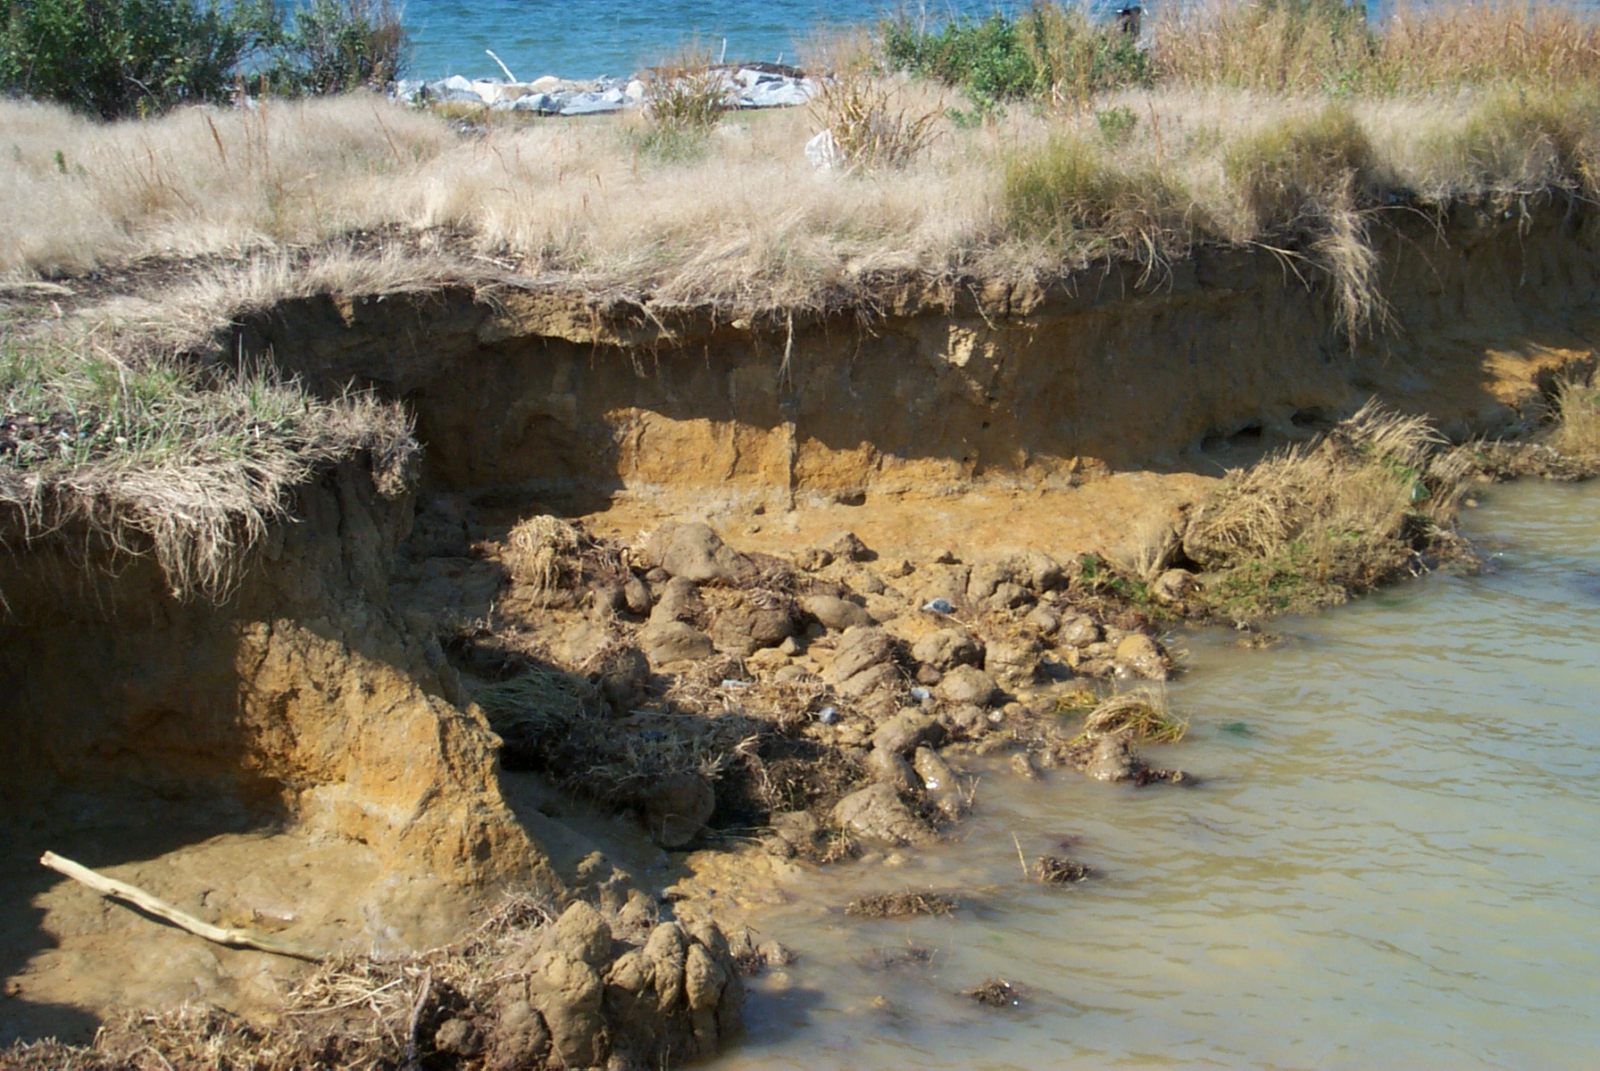 erosion and the lost of lives at the shoreline